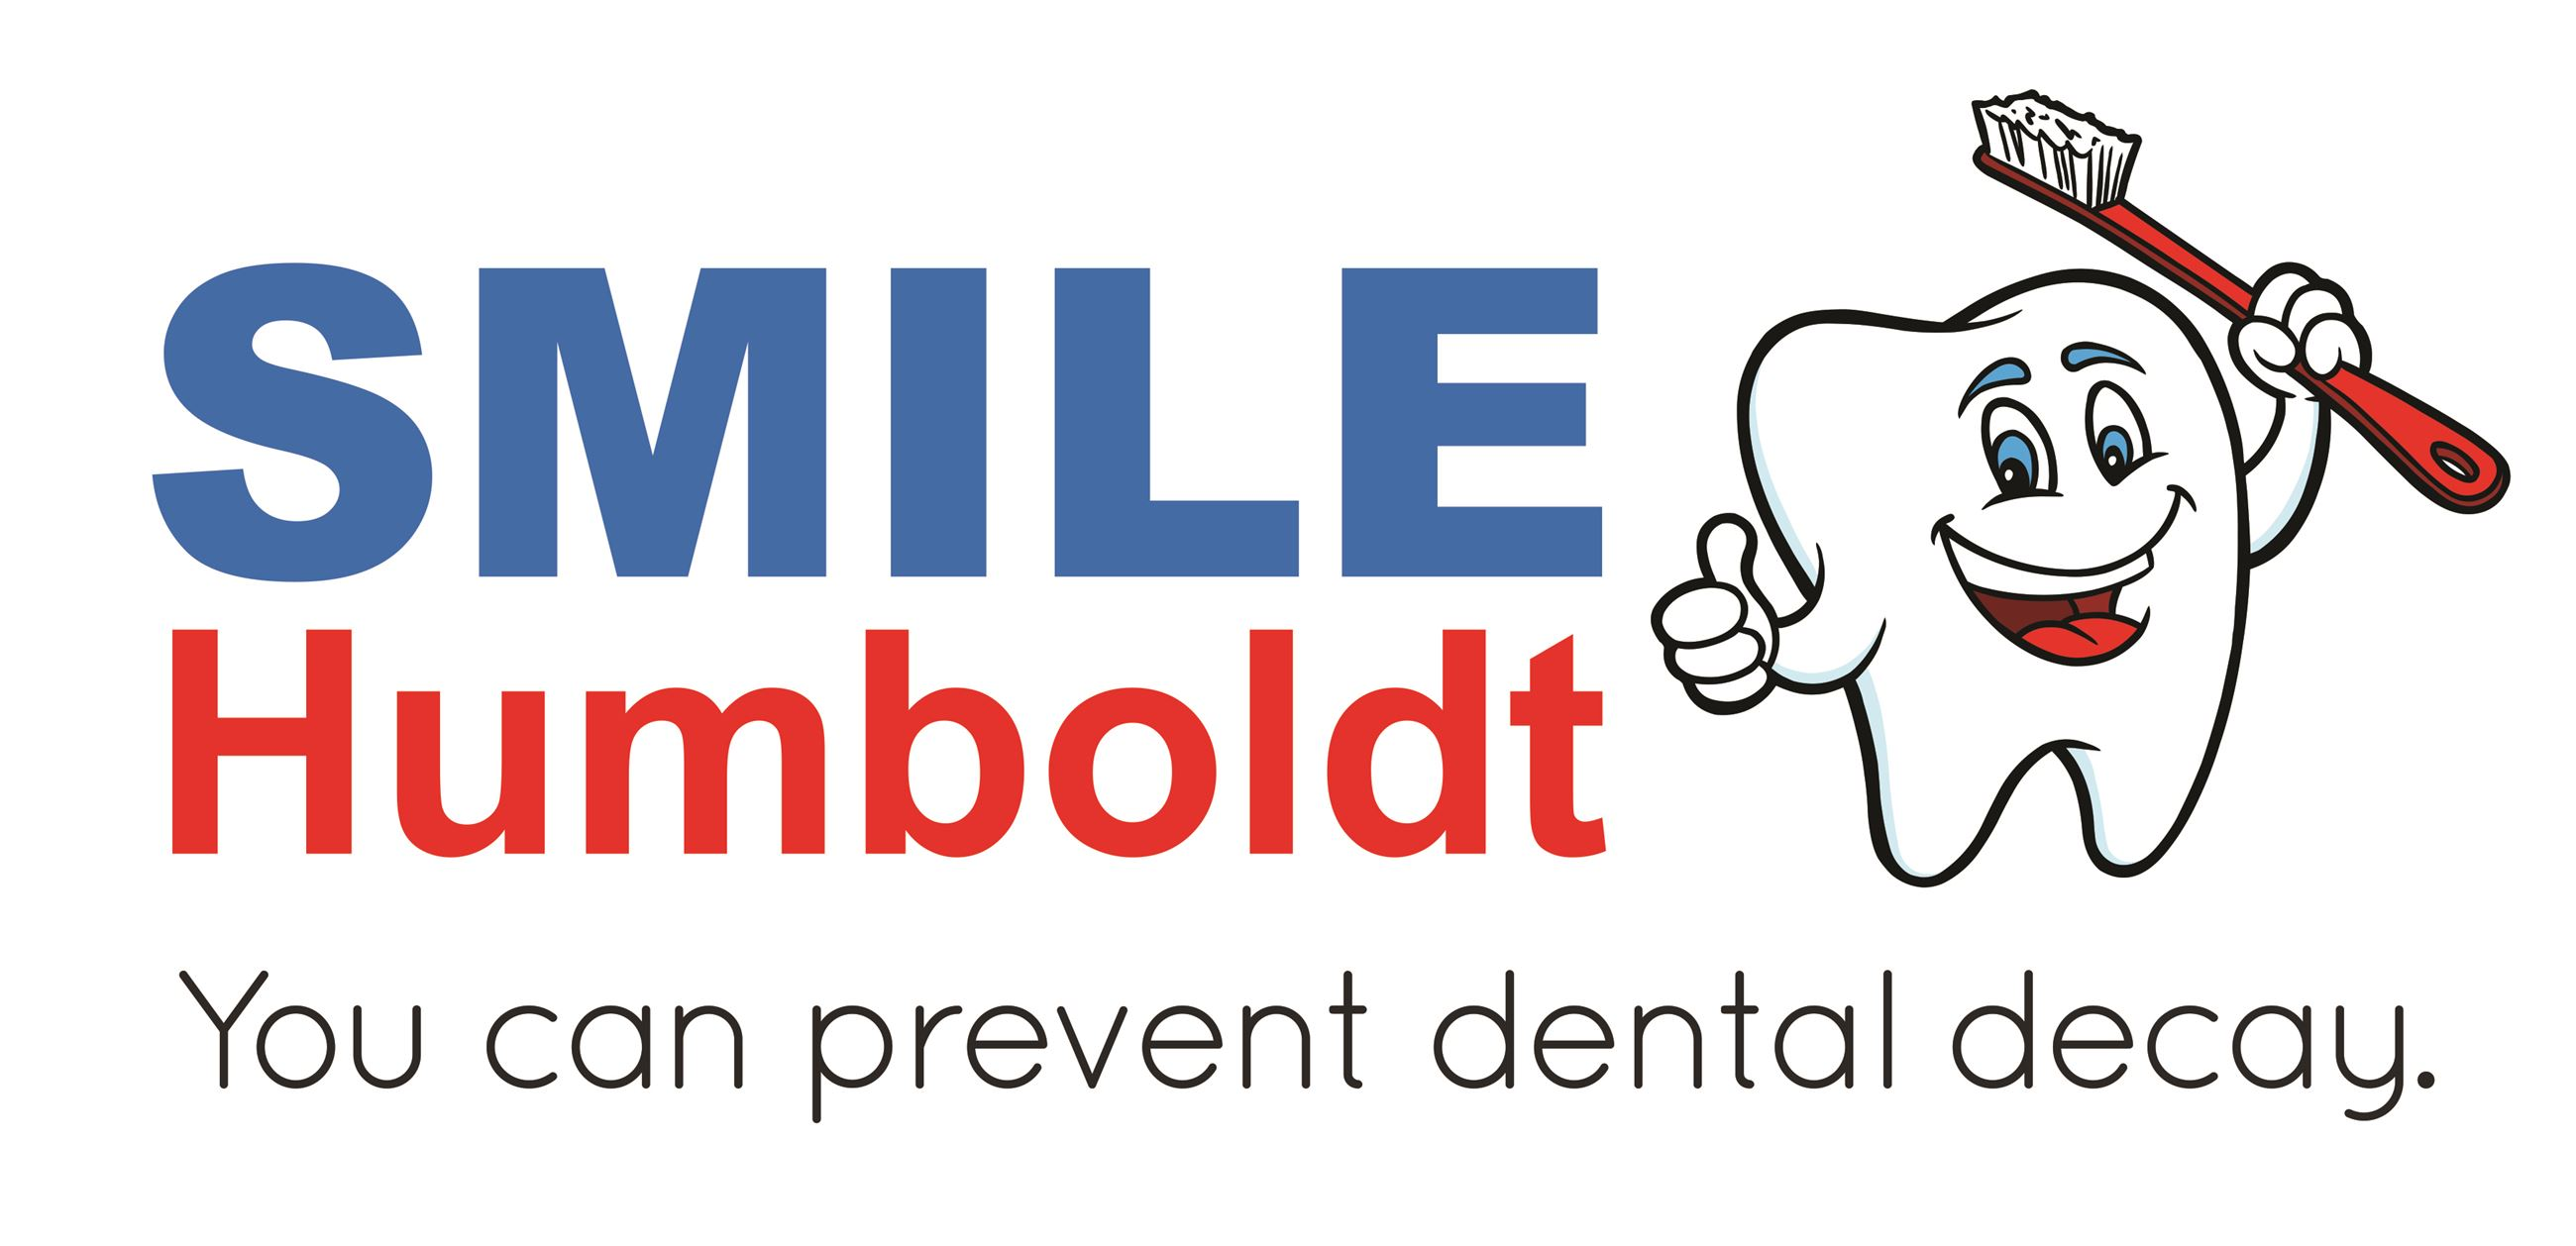 Smile Humboldt Logo. You can prevent dental decay.